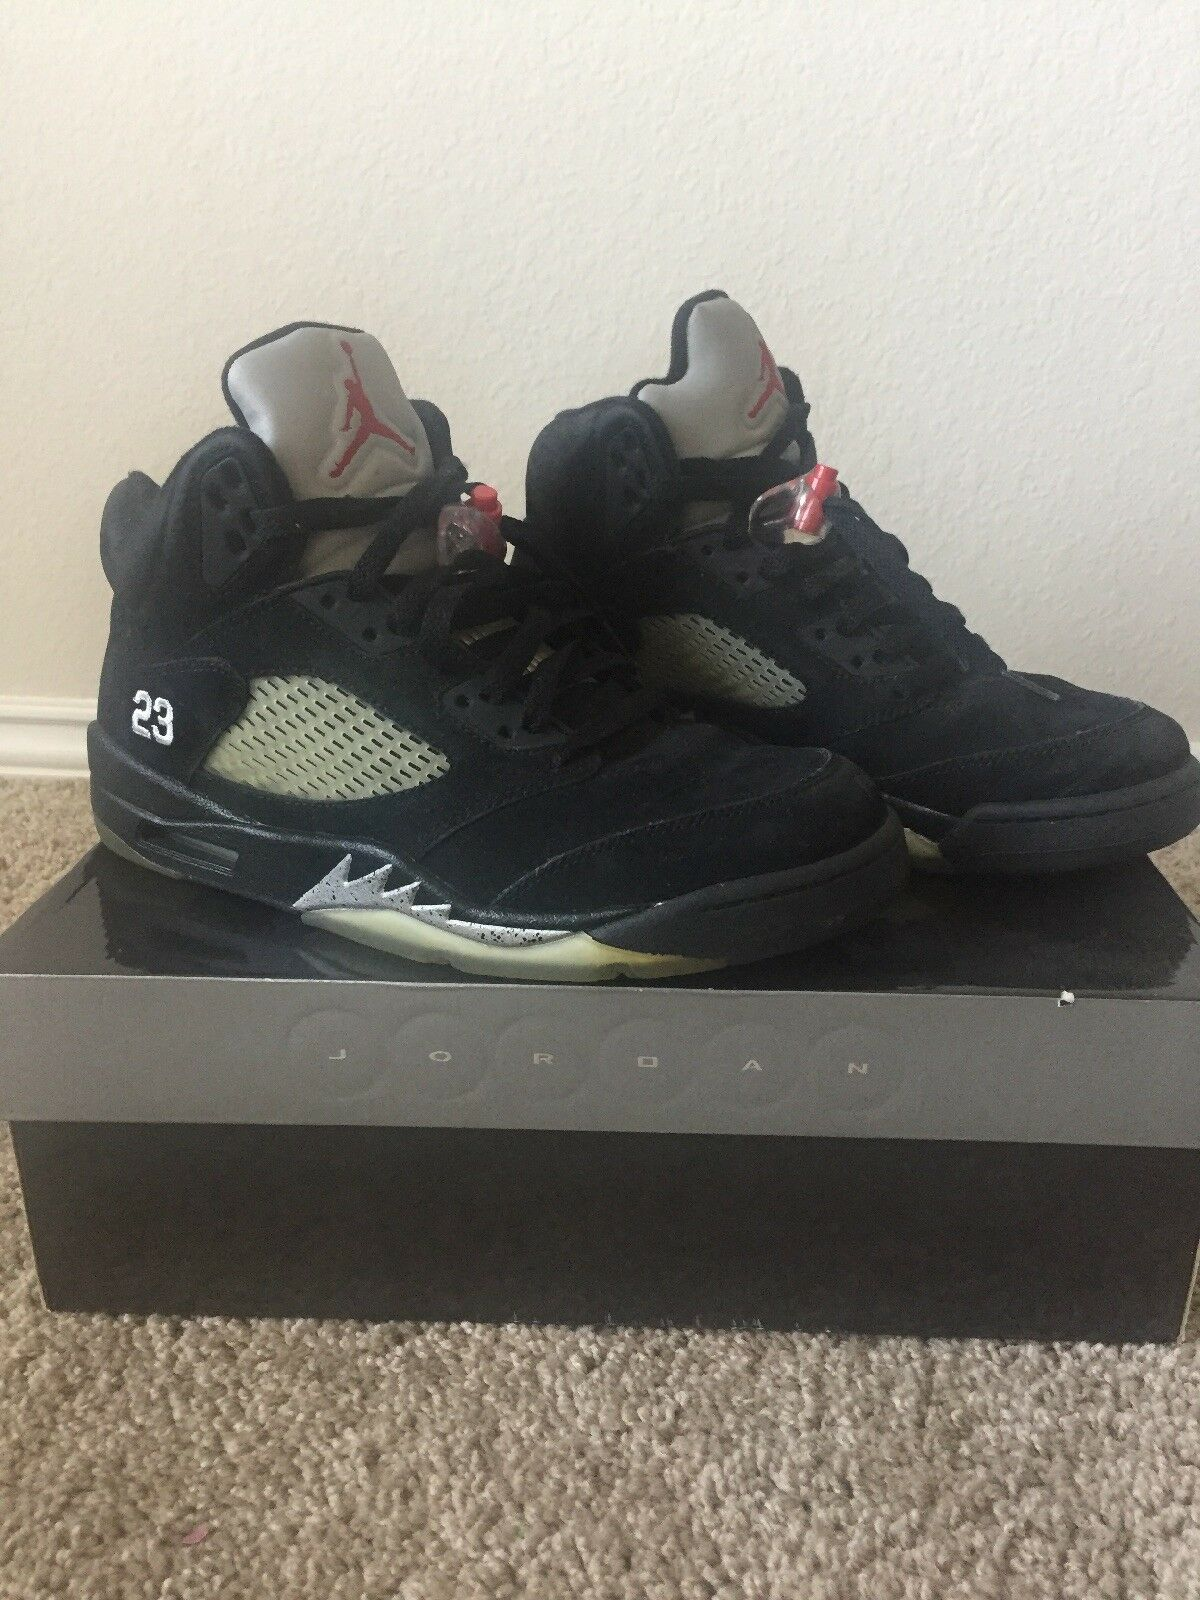 2011 V NIKE AIR JORDAN 5 V 2011 RETRO black/red-metallic silver 136027-010 sz 9.5 7b59a6